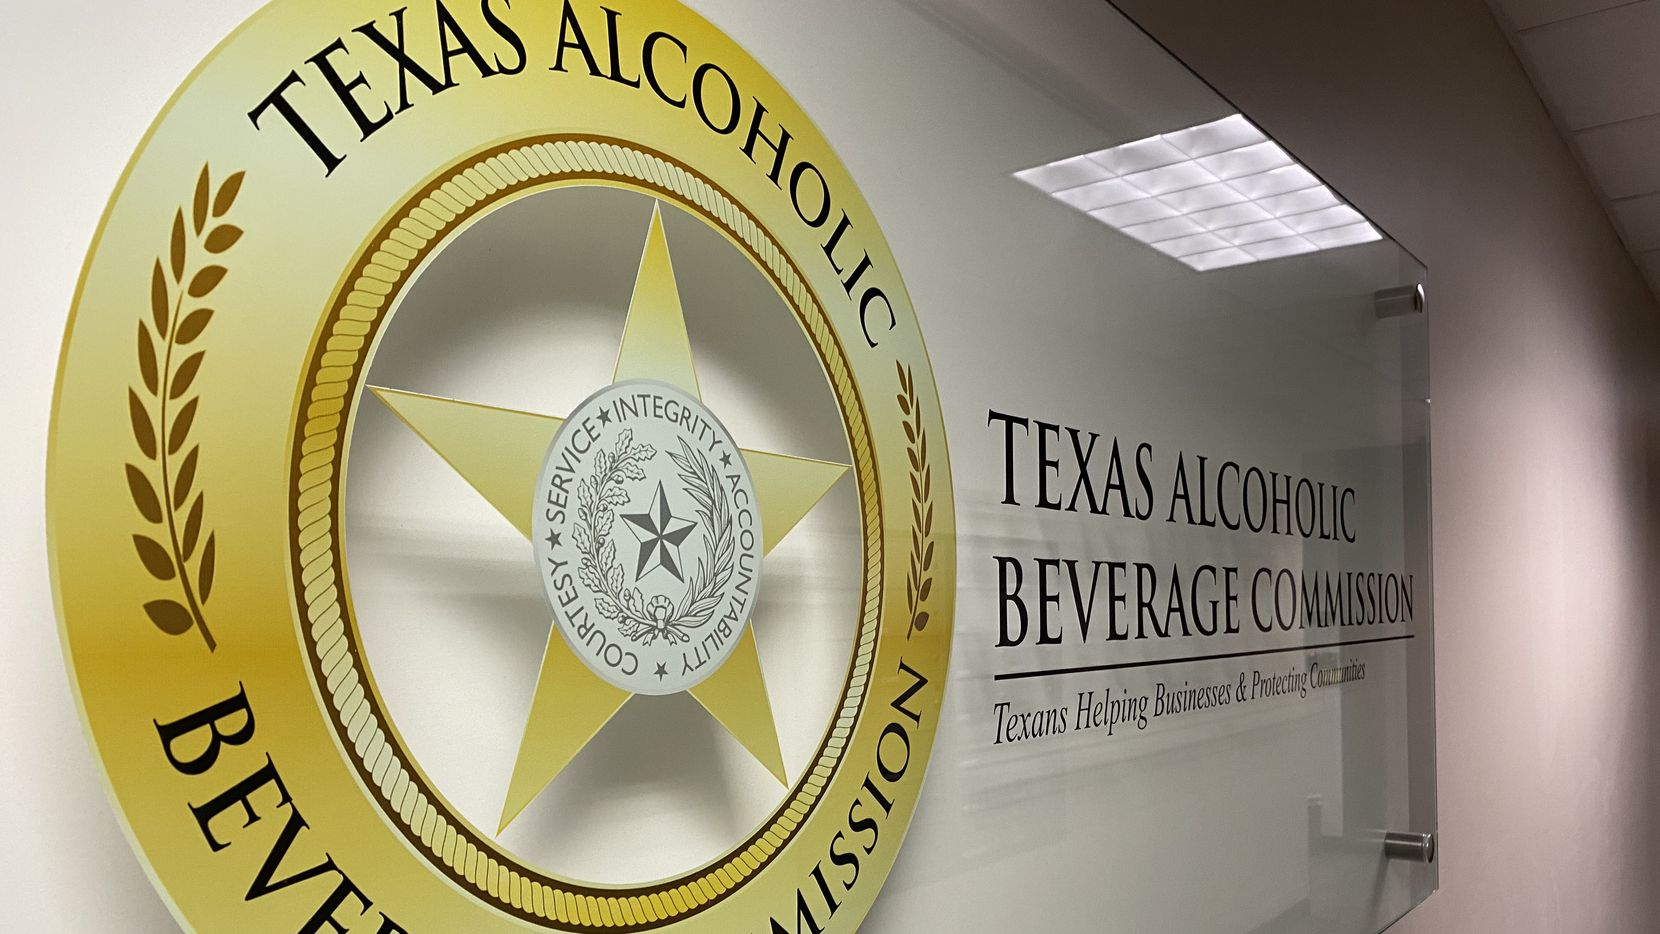 The Texas Alcoholic Beverage Commission has trained its employees and contractors to report warning signs of human trafficking.